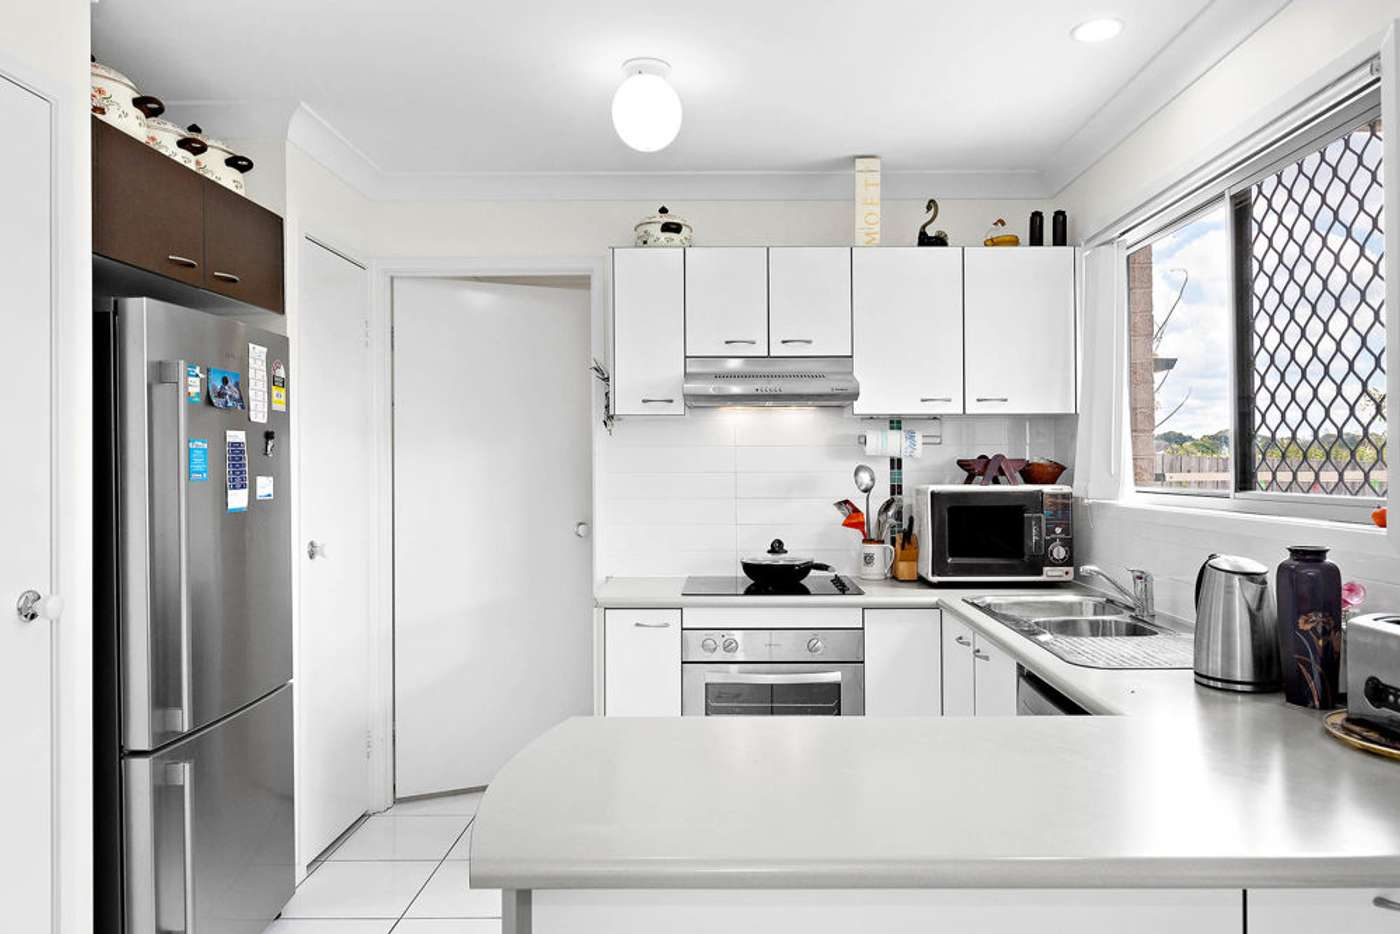 Main view of Homely house listing, 19/38 Cooinda St, Eastern Heights QLD 4305